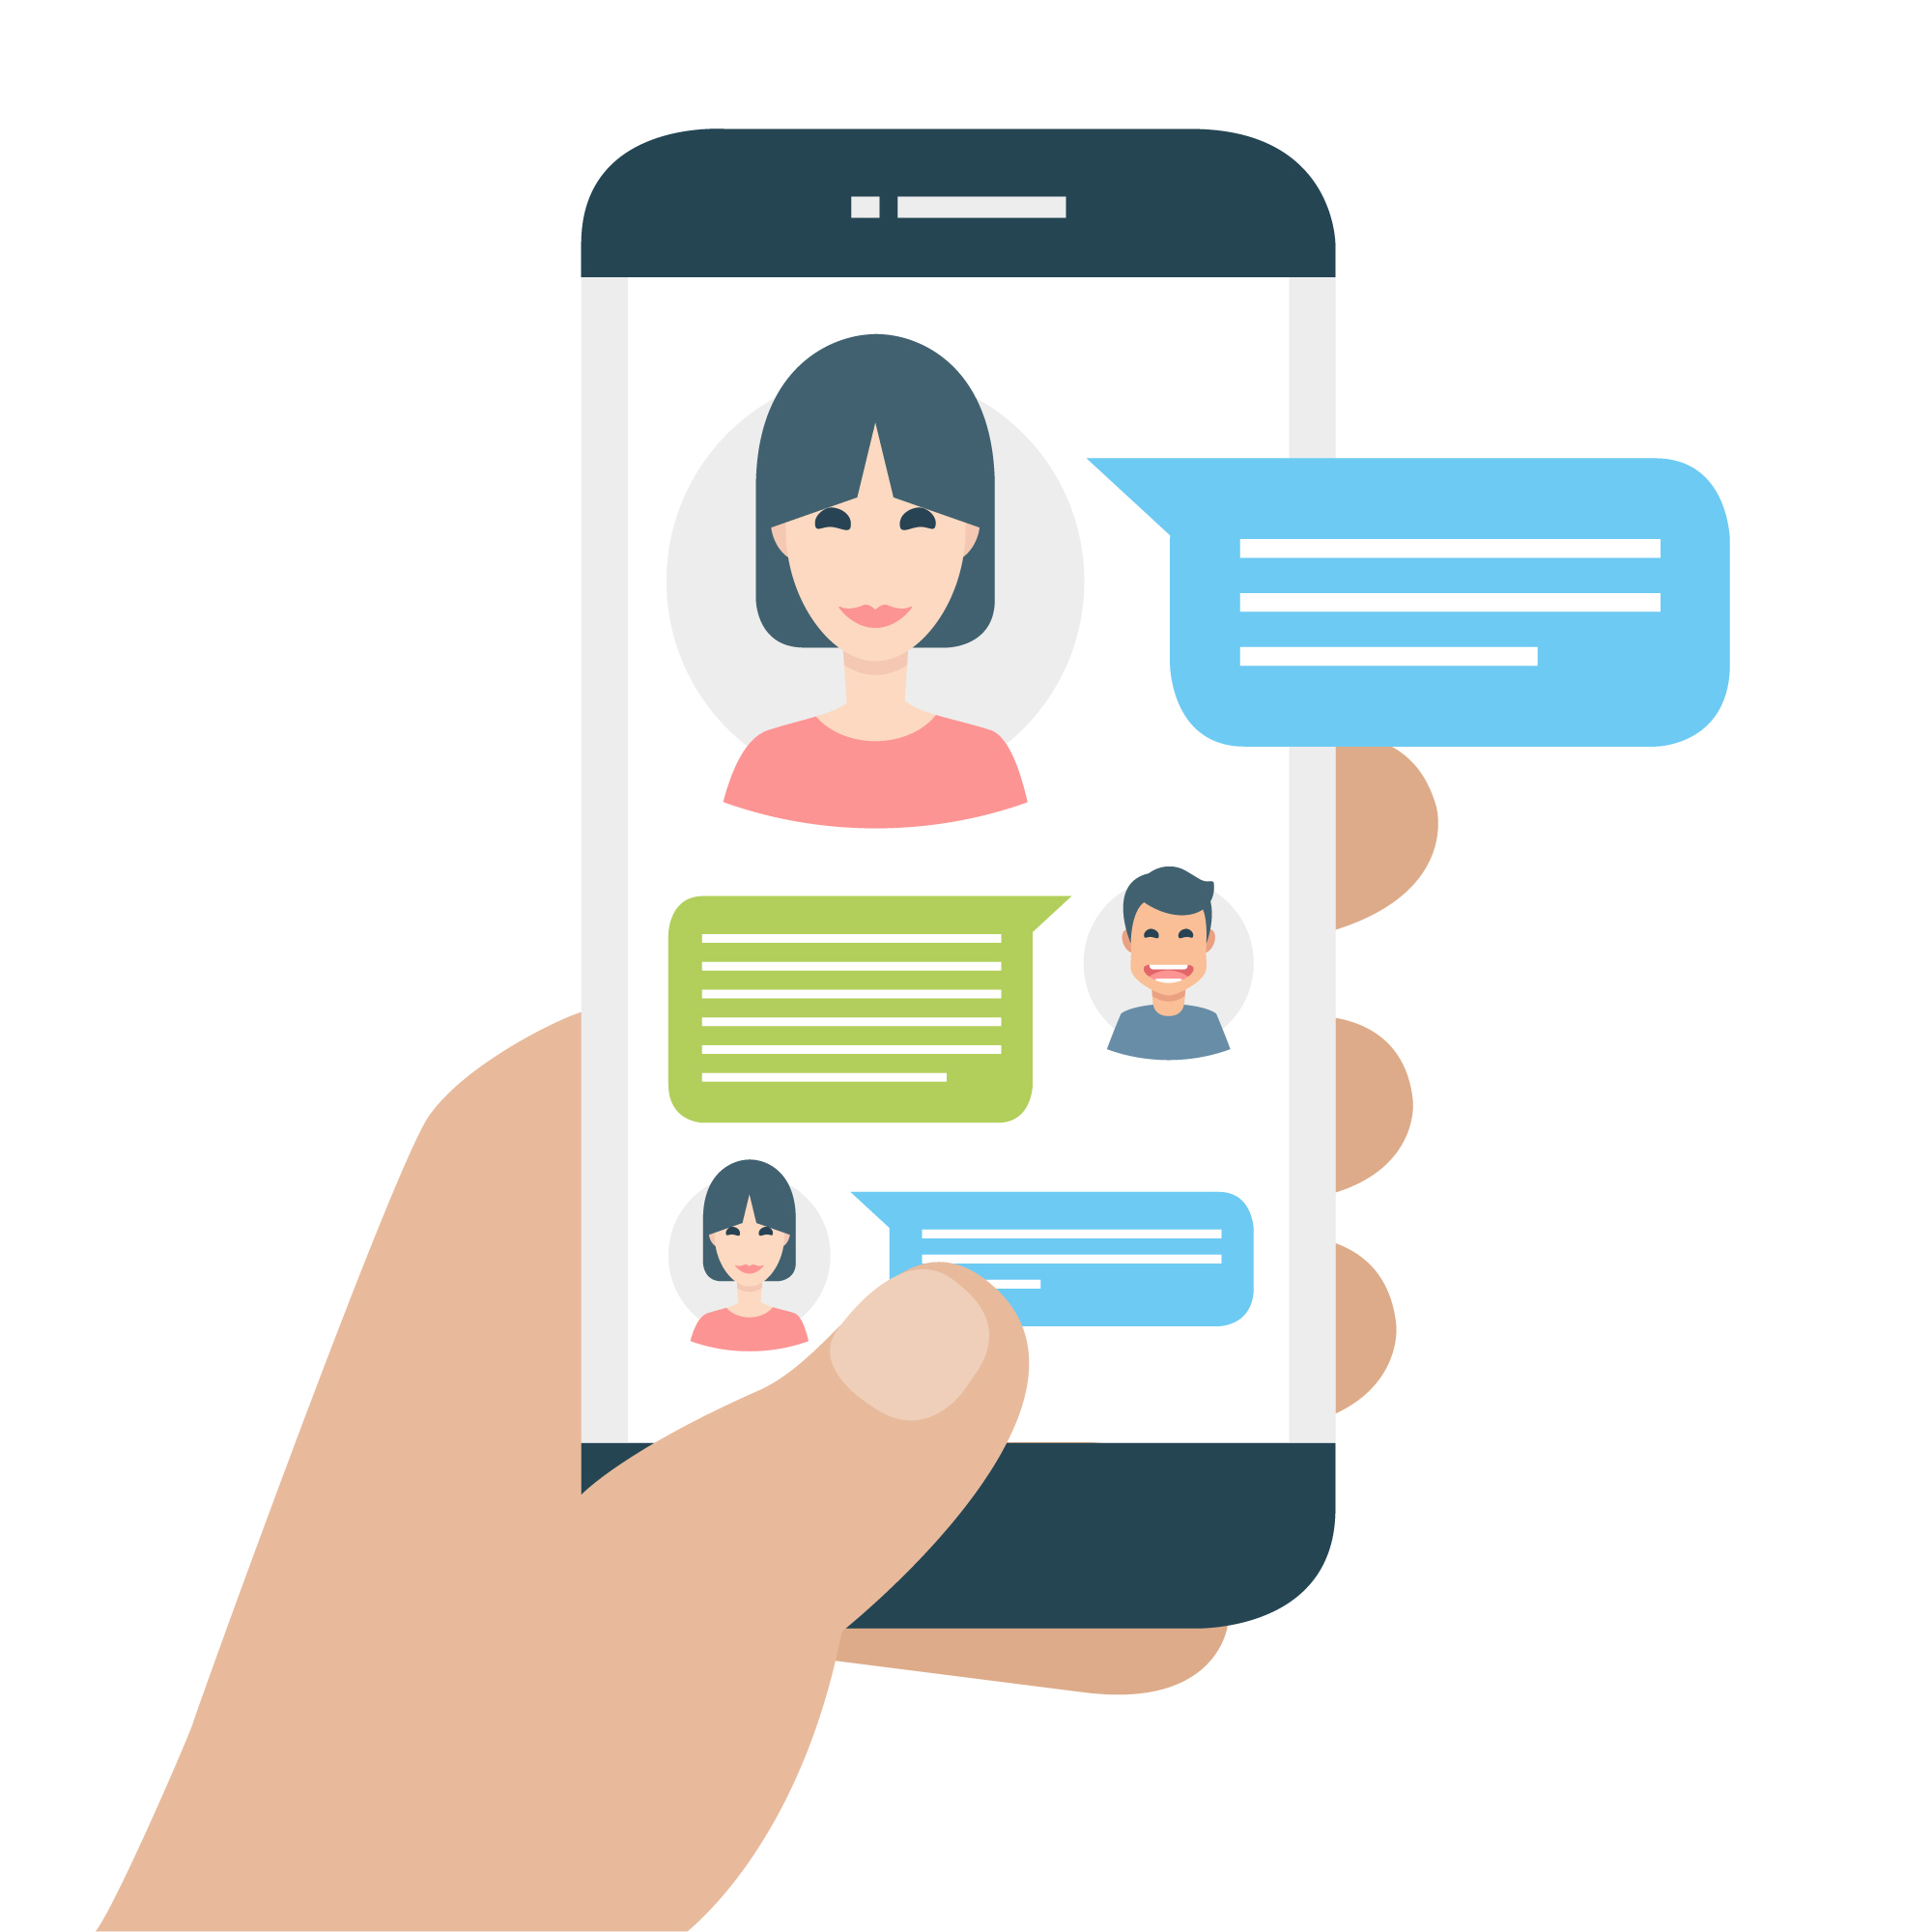 Mobile phone with messaging application